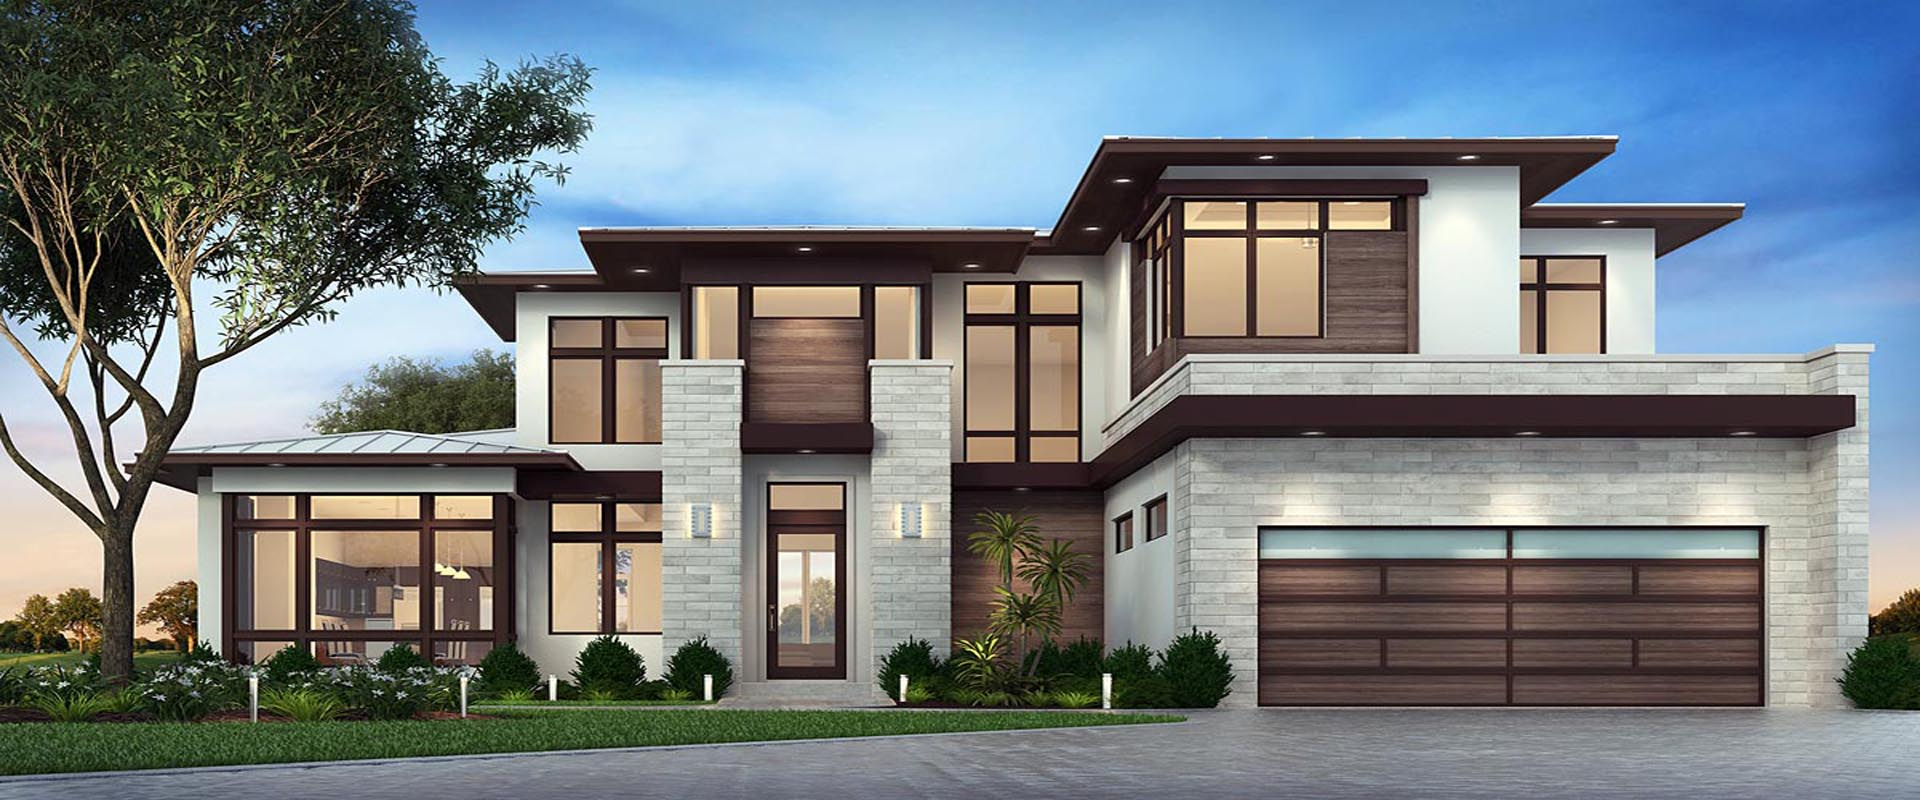 We build signature homes